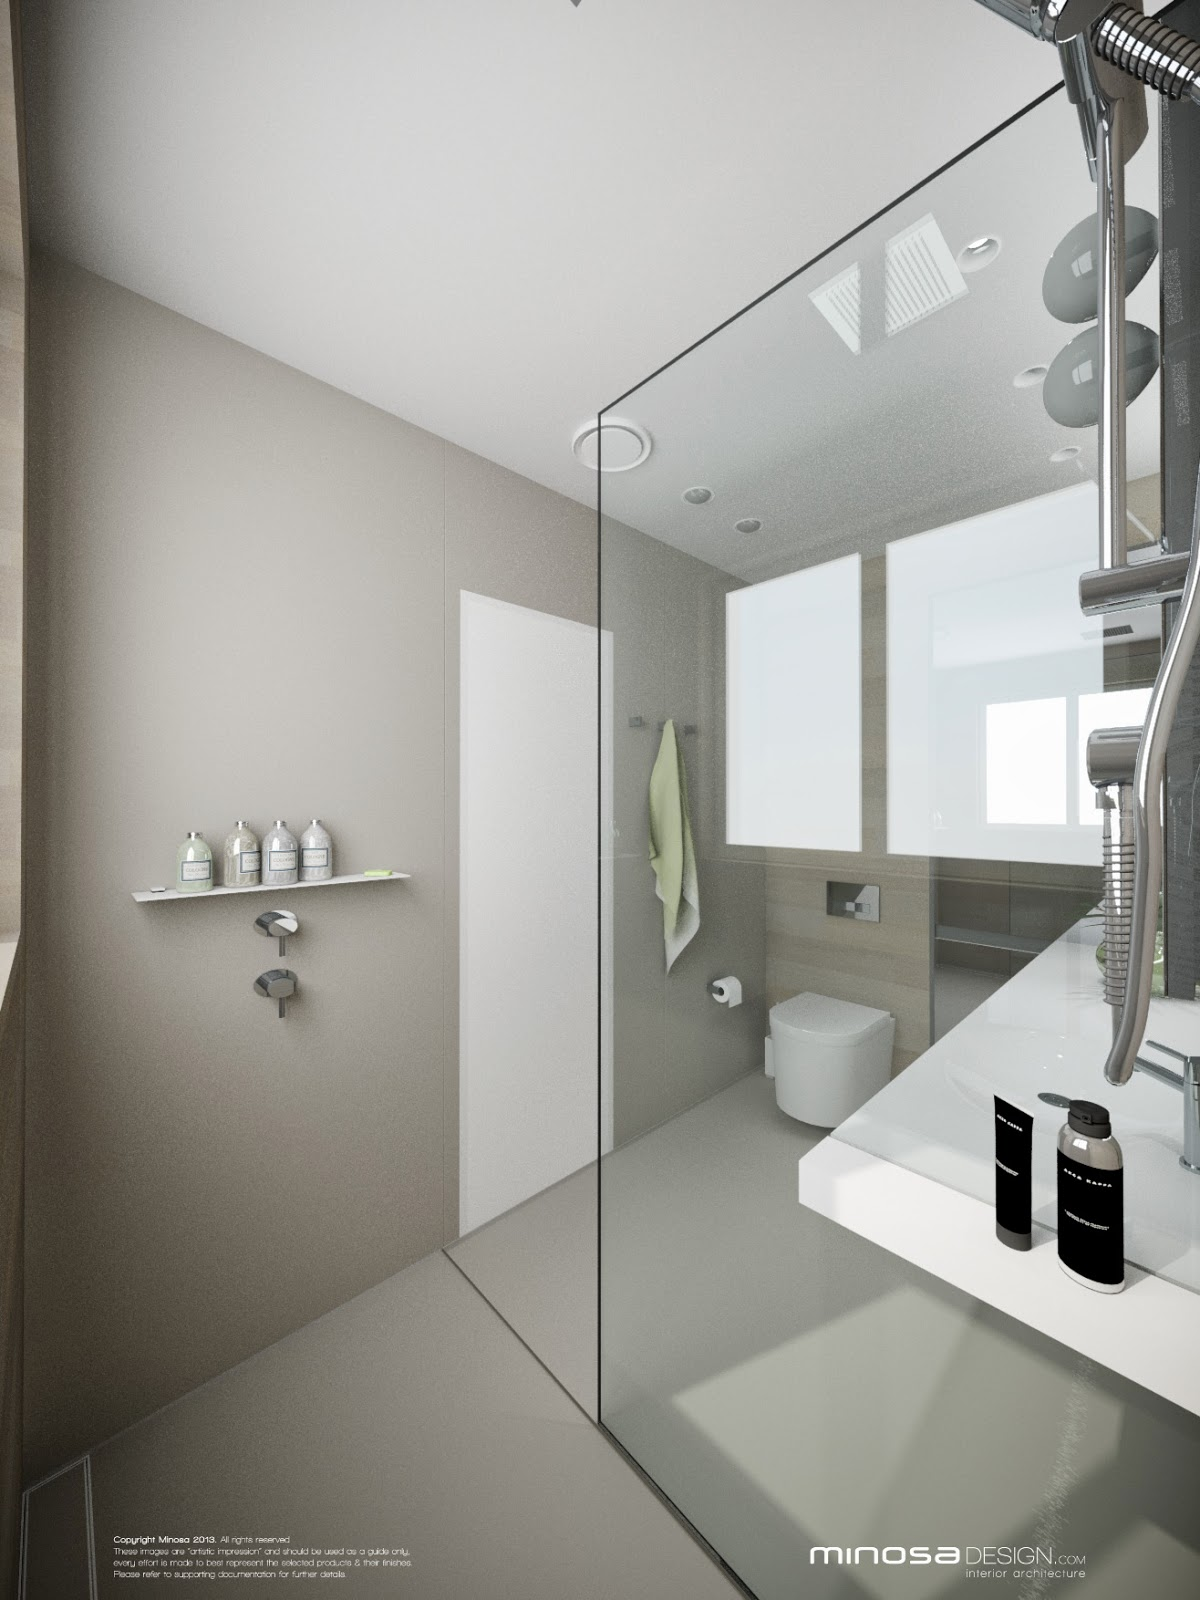 Minosa bringing sexy back the modern bathroom for Well designed bedrooms